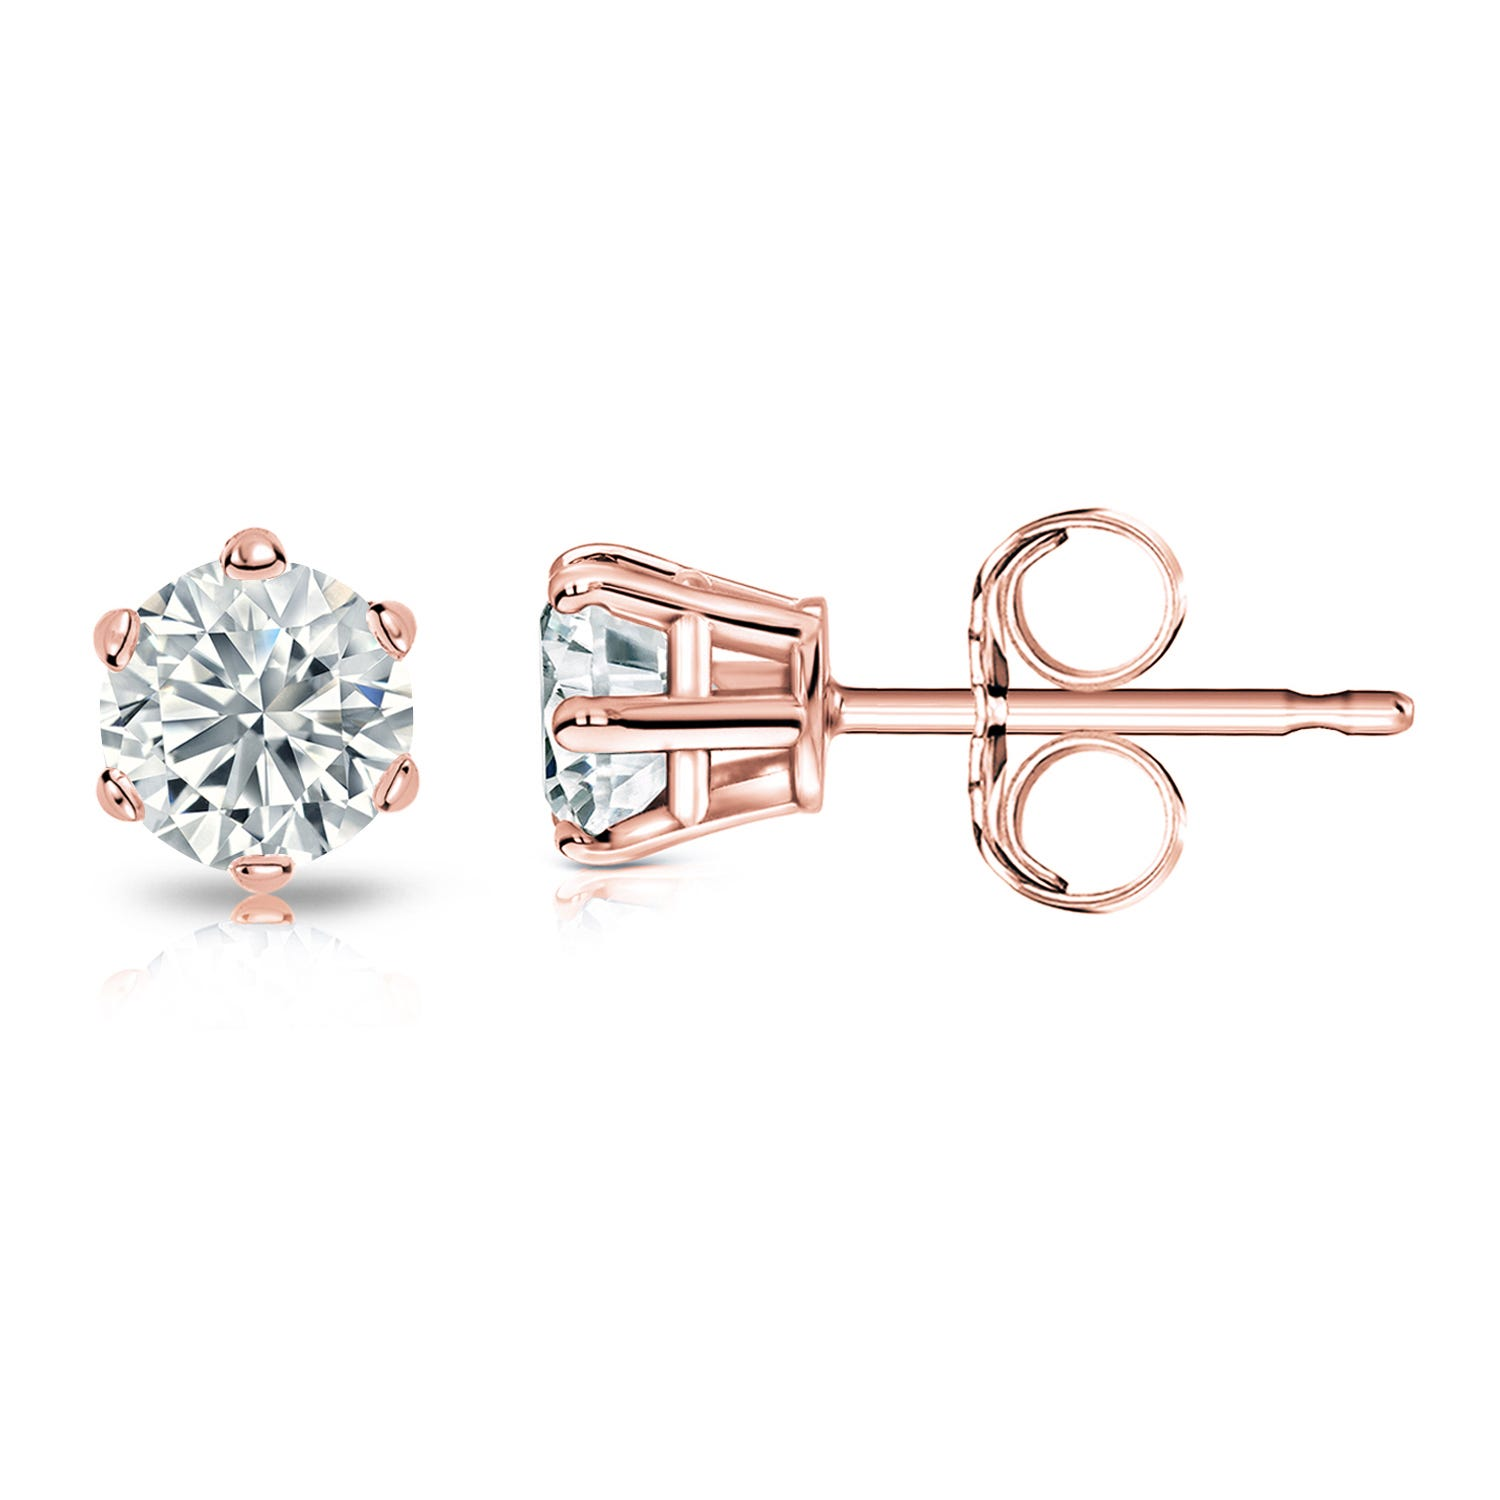 Round Diamond 3/4ctw. (IJ-I2) Solitaire Stud 6-Prong Earrings in 14K Rose Gold